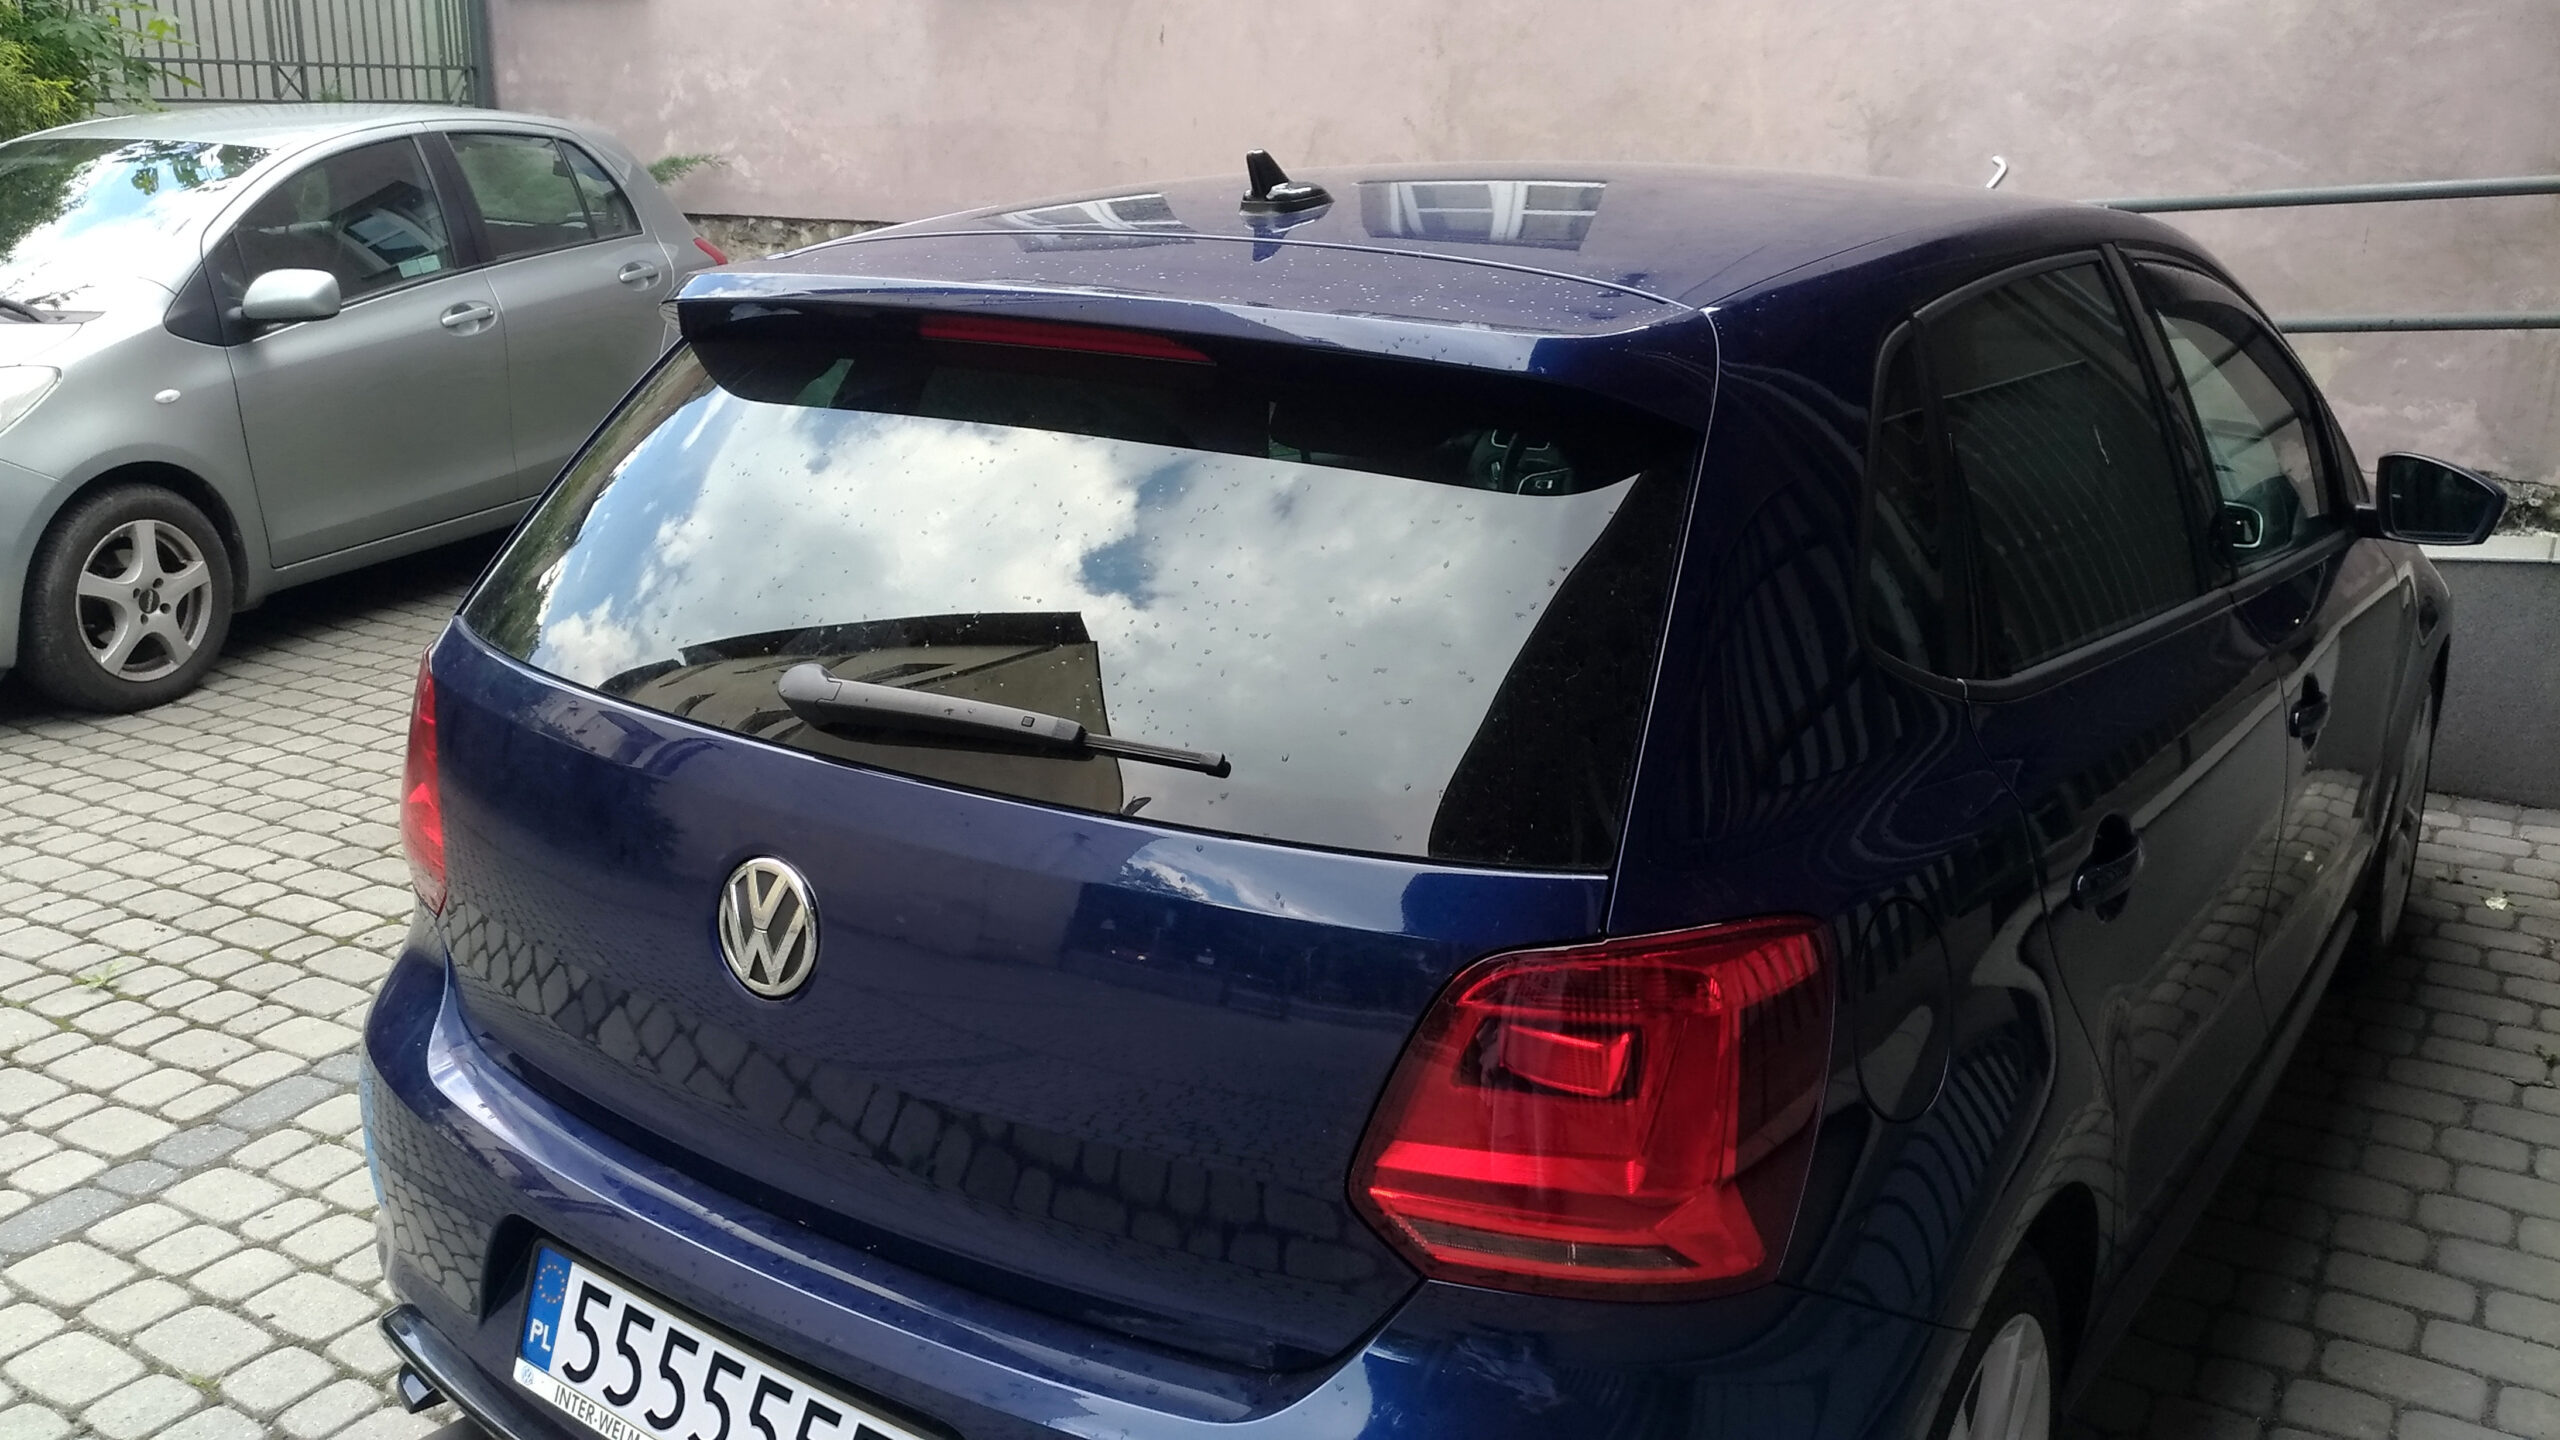 R-Line roof spoiler — Polo 6R R-Line / GTI / BlueGT/6C R-Line   P 20180522 155339 vHDR Auto scaled